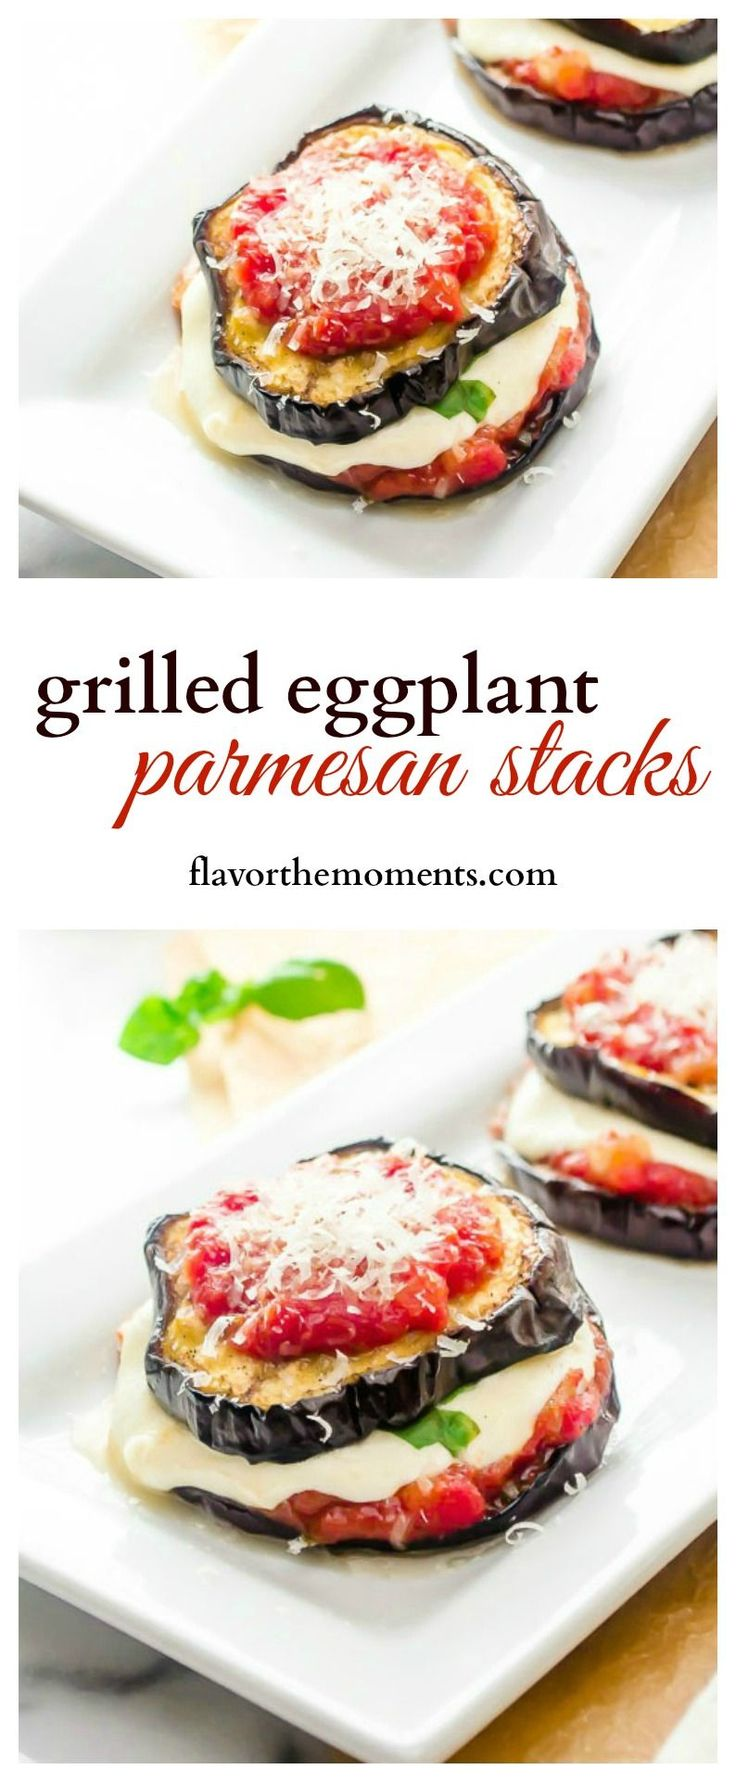 ... low calore recipes on Pinterest | Zucchini, Eggplants and Cooking